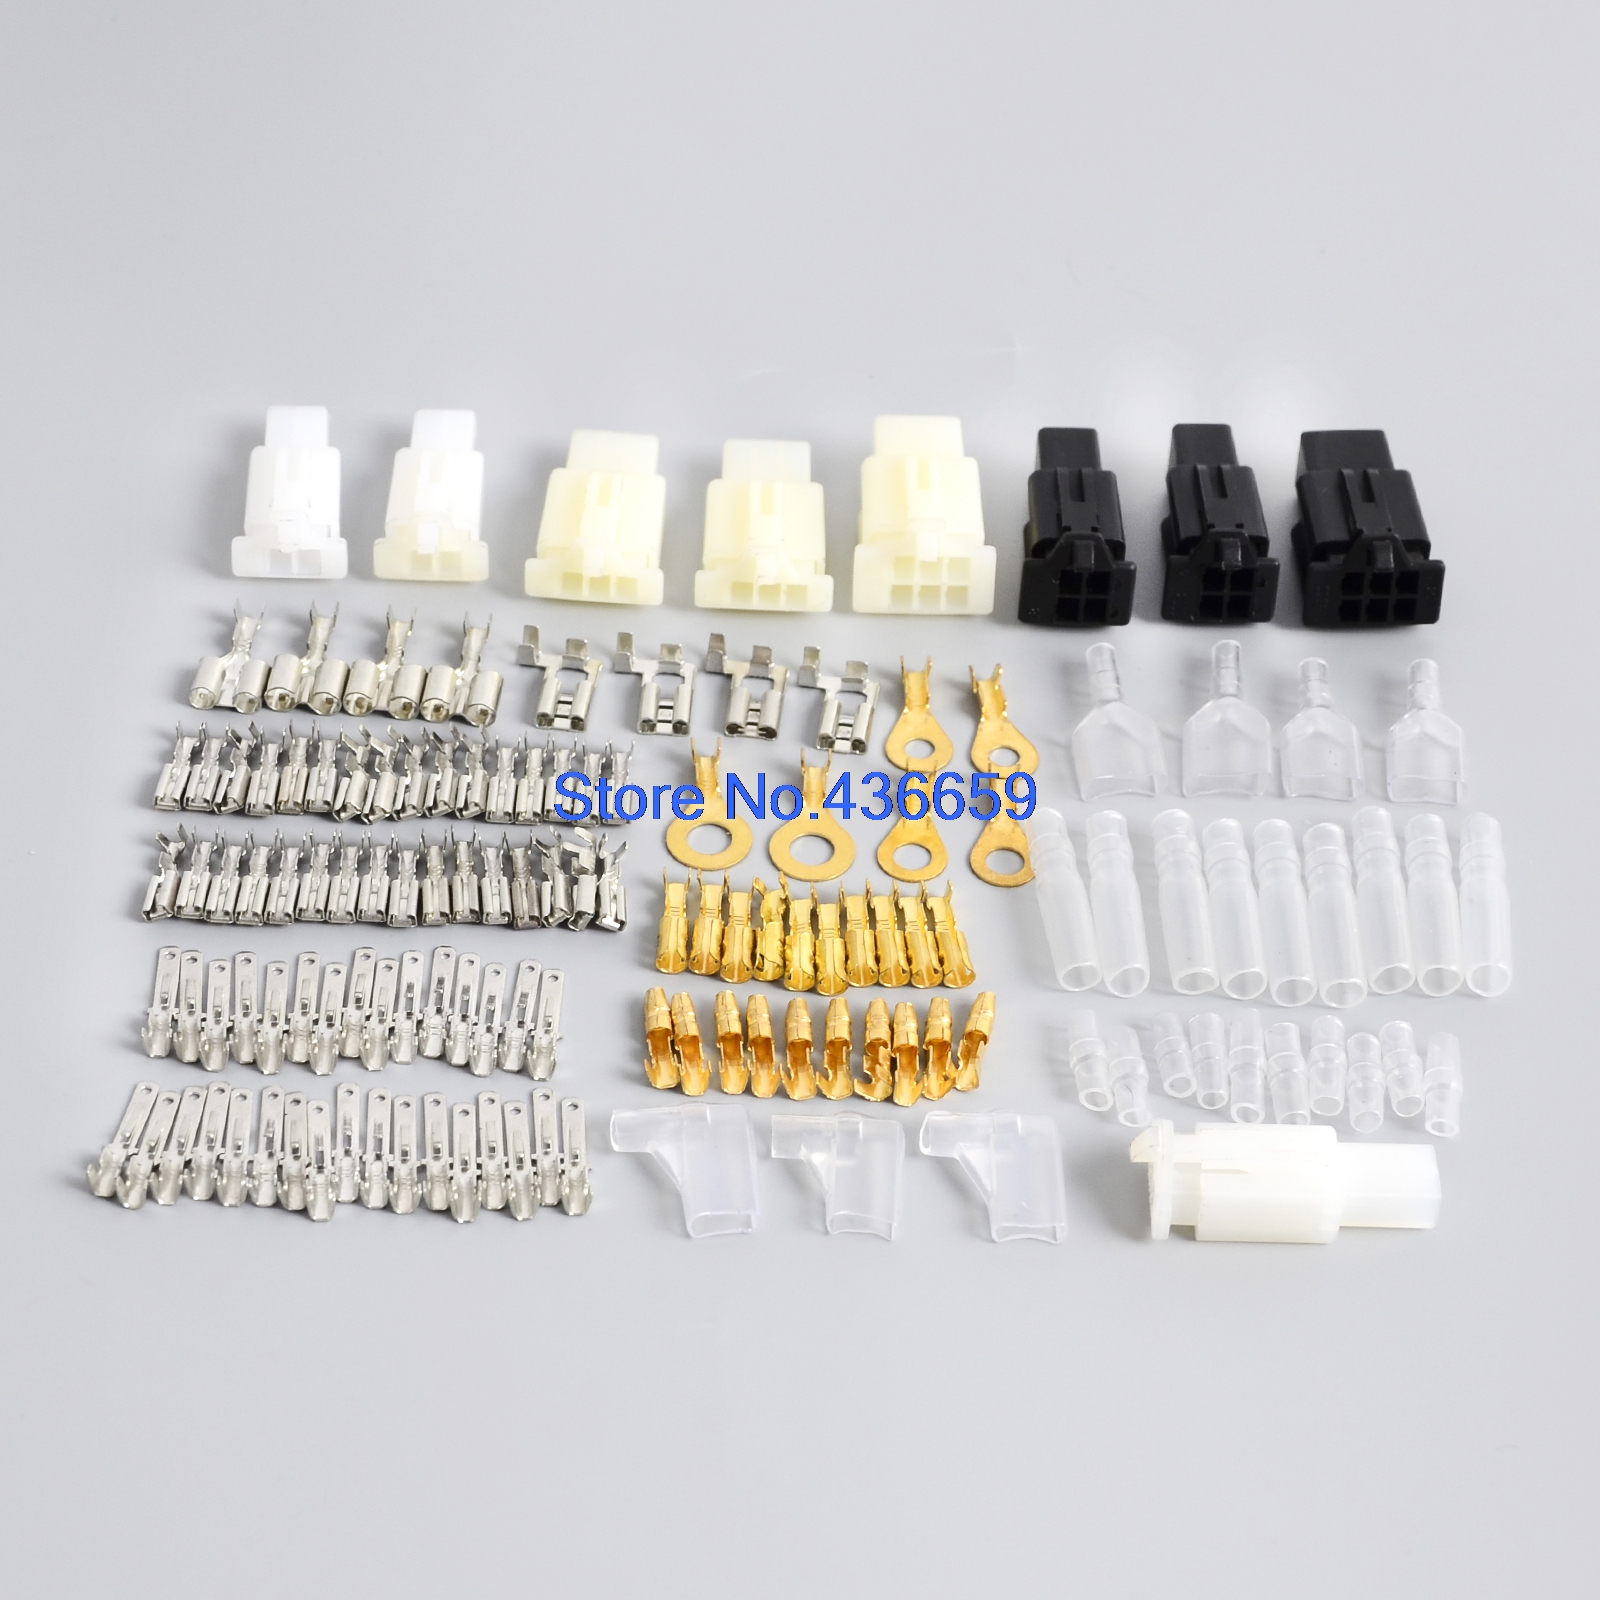 Motorcycle Connector Wiring Loom Automotive Harness Auto Terminal Repair Kit  PVC Insulation Covers Tin Plate Brass Terminals-in Fuses from Automobiles  ...